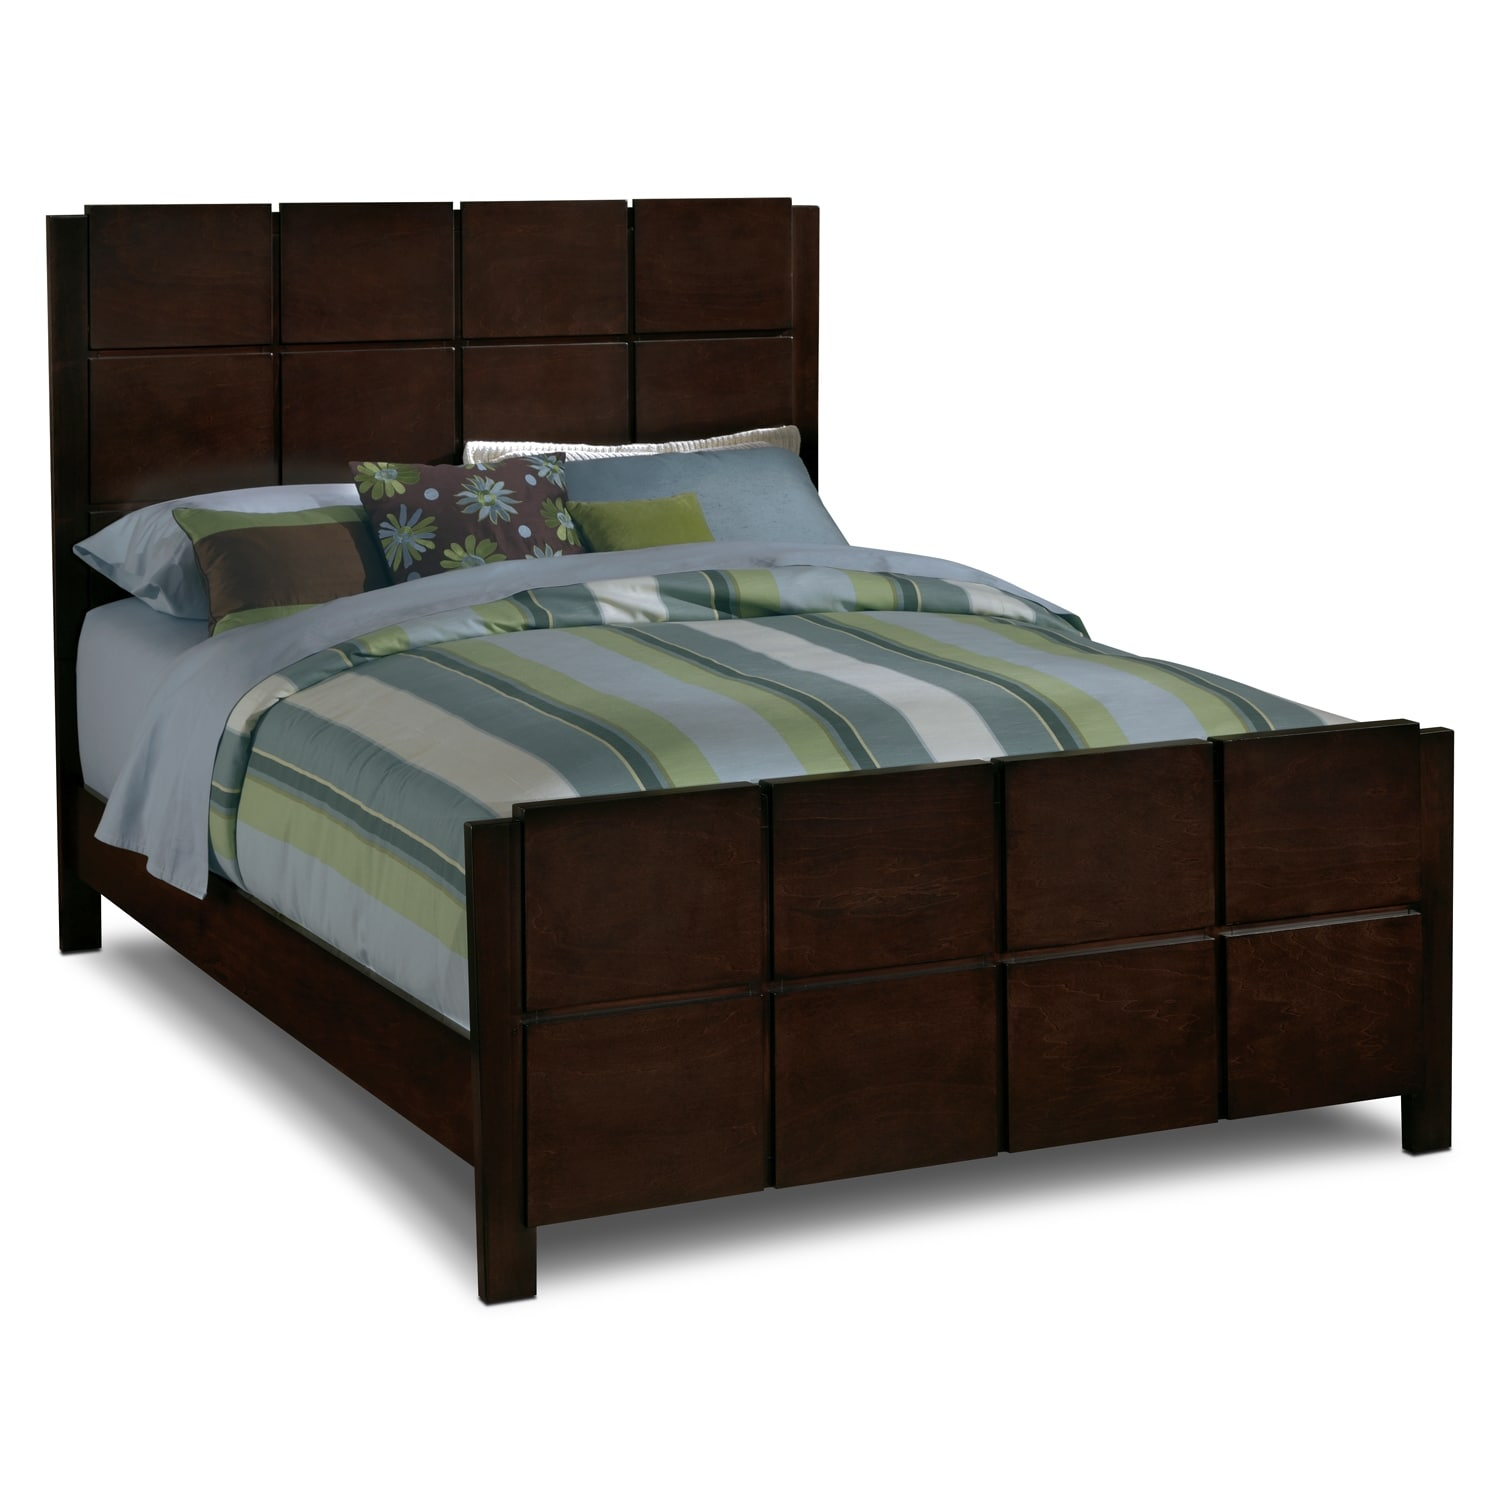 mosaic queen bed dark brown bed furniture image